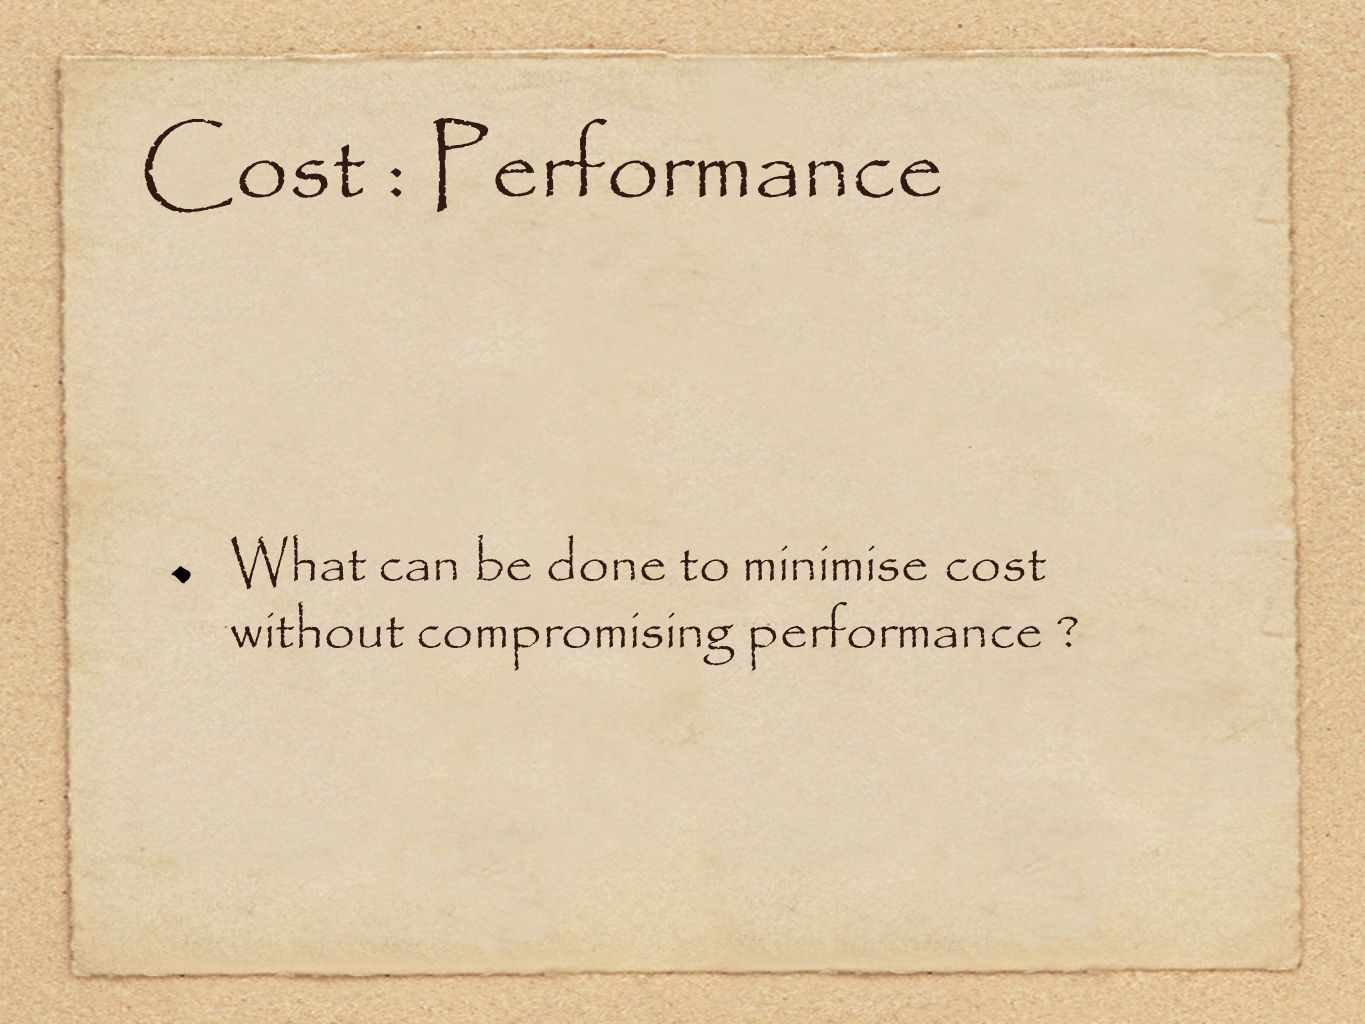 Cost : Performance What can be done to minimise cost without compromising performance